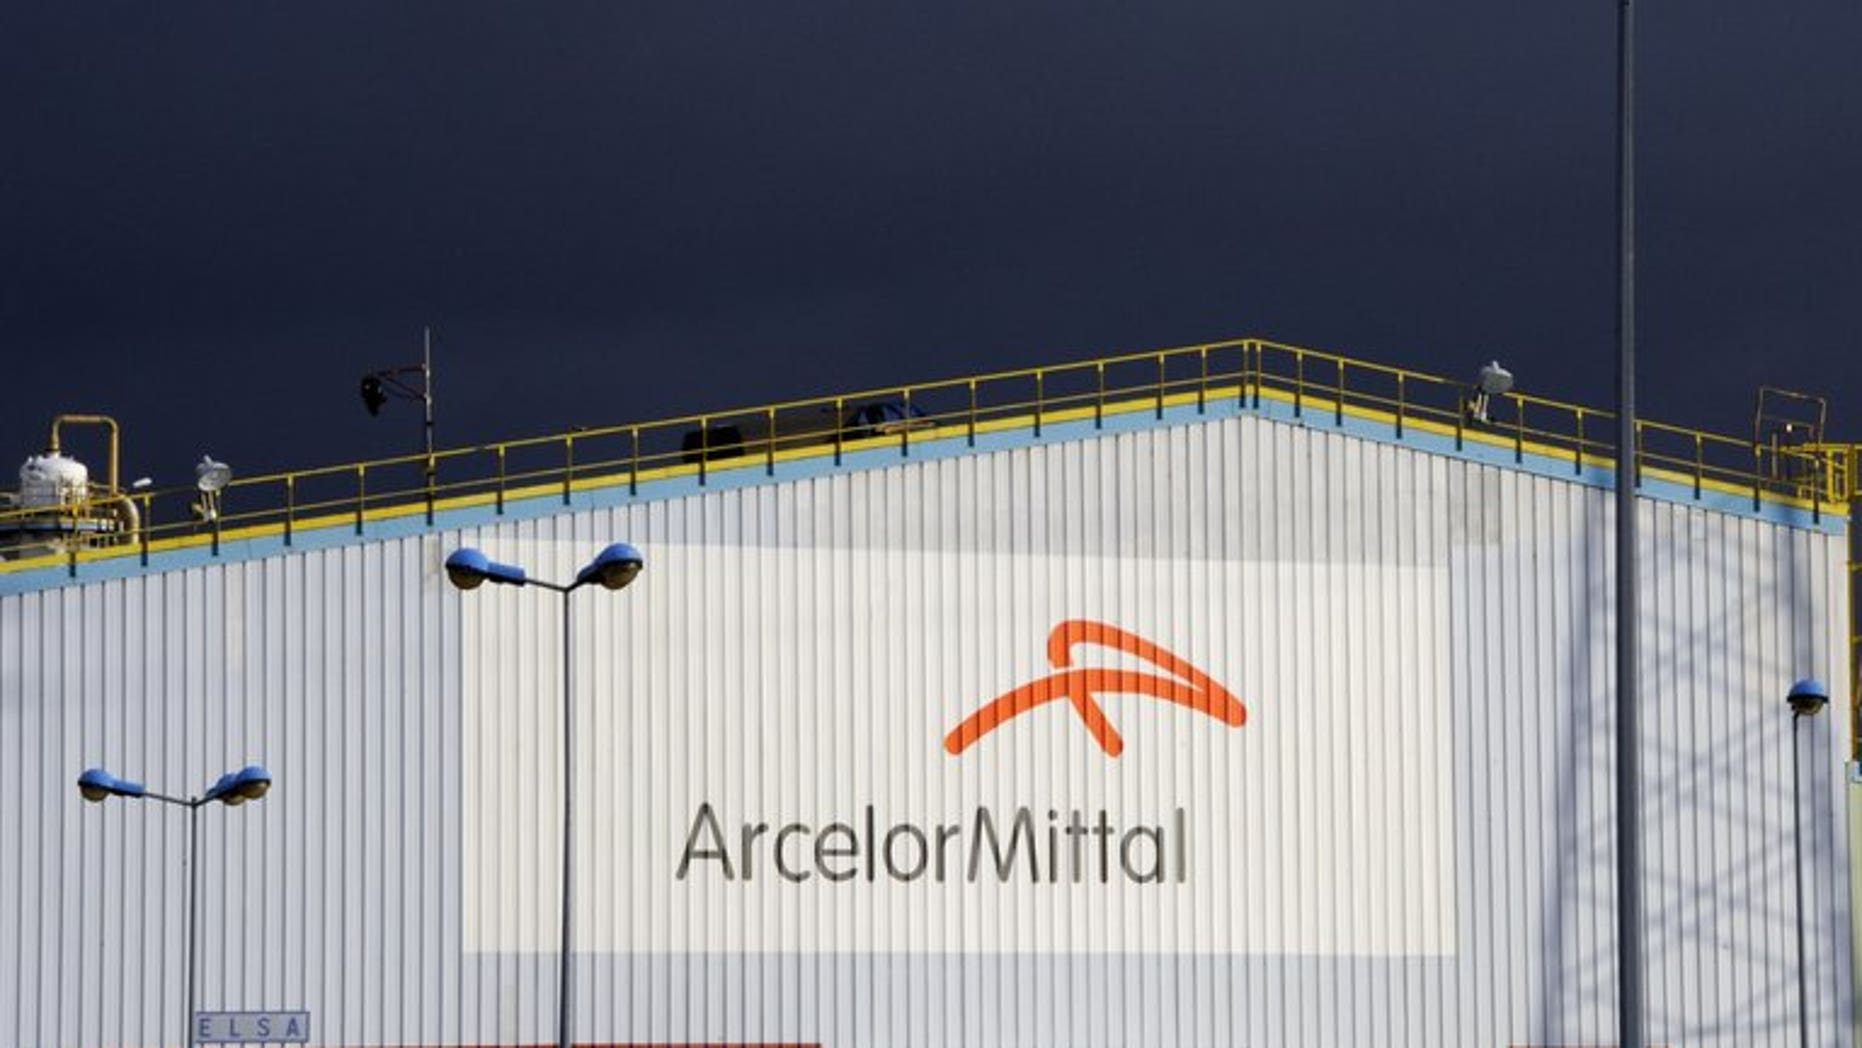 ArcelorMittal's steel plant in Florange eastern France is pictured on December 10, 2012. The world's largest steel maker ArcelorMittal Wednesday said it has scrapped plans to build a steel plant in eastern India due to delays in acquiring land.